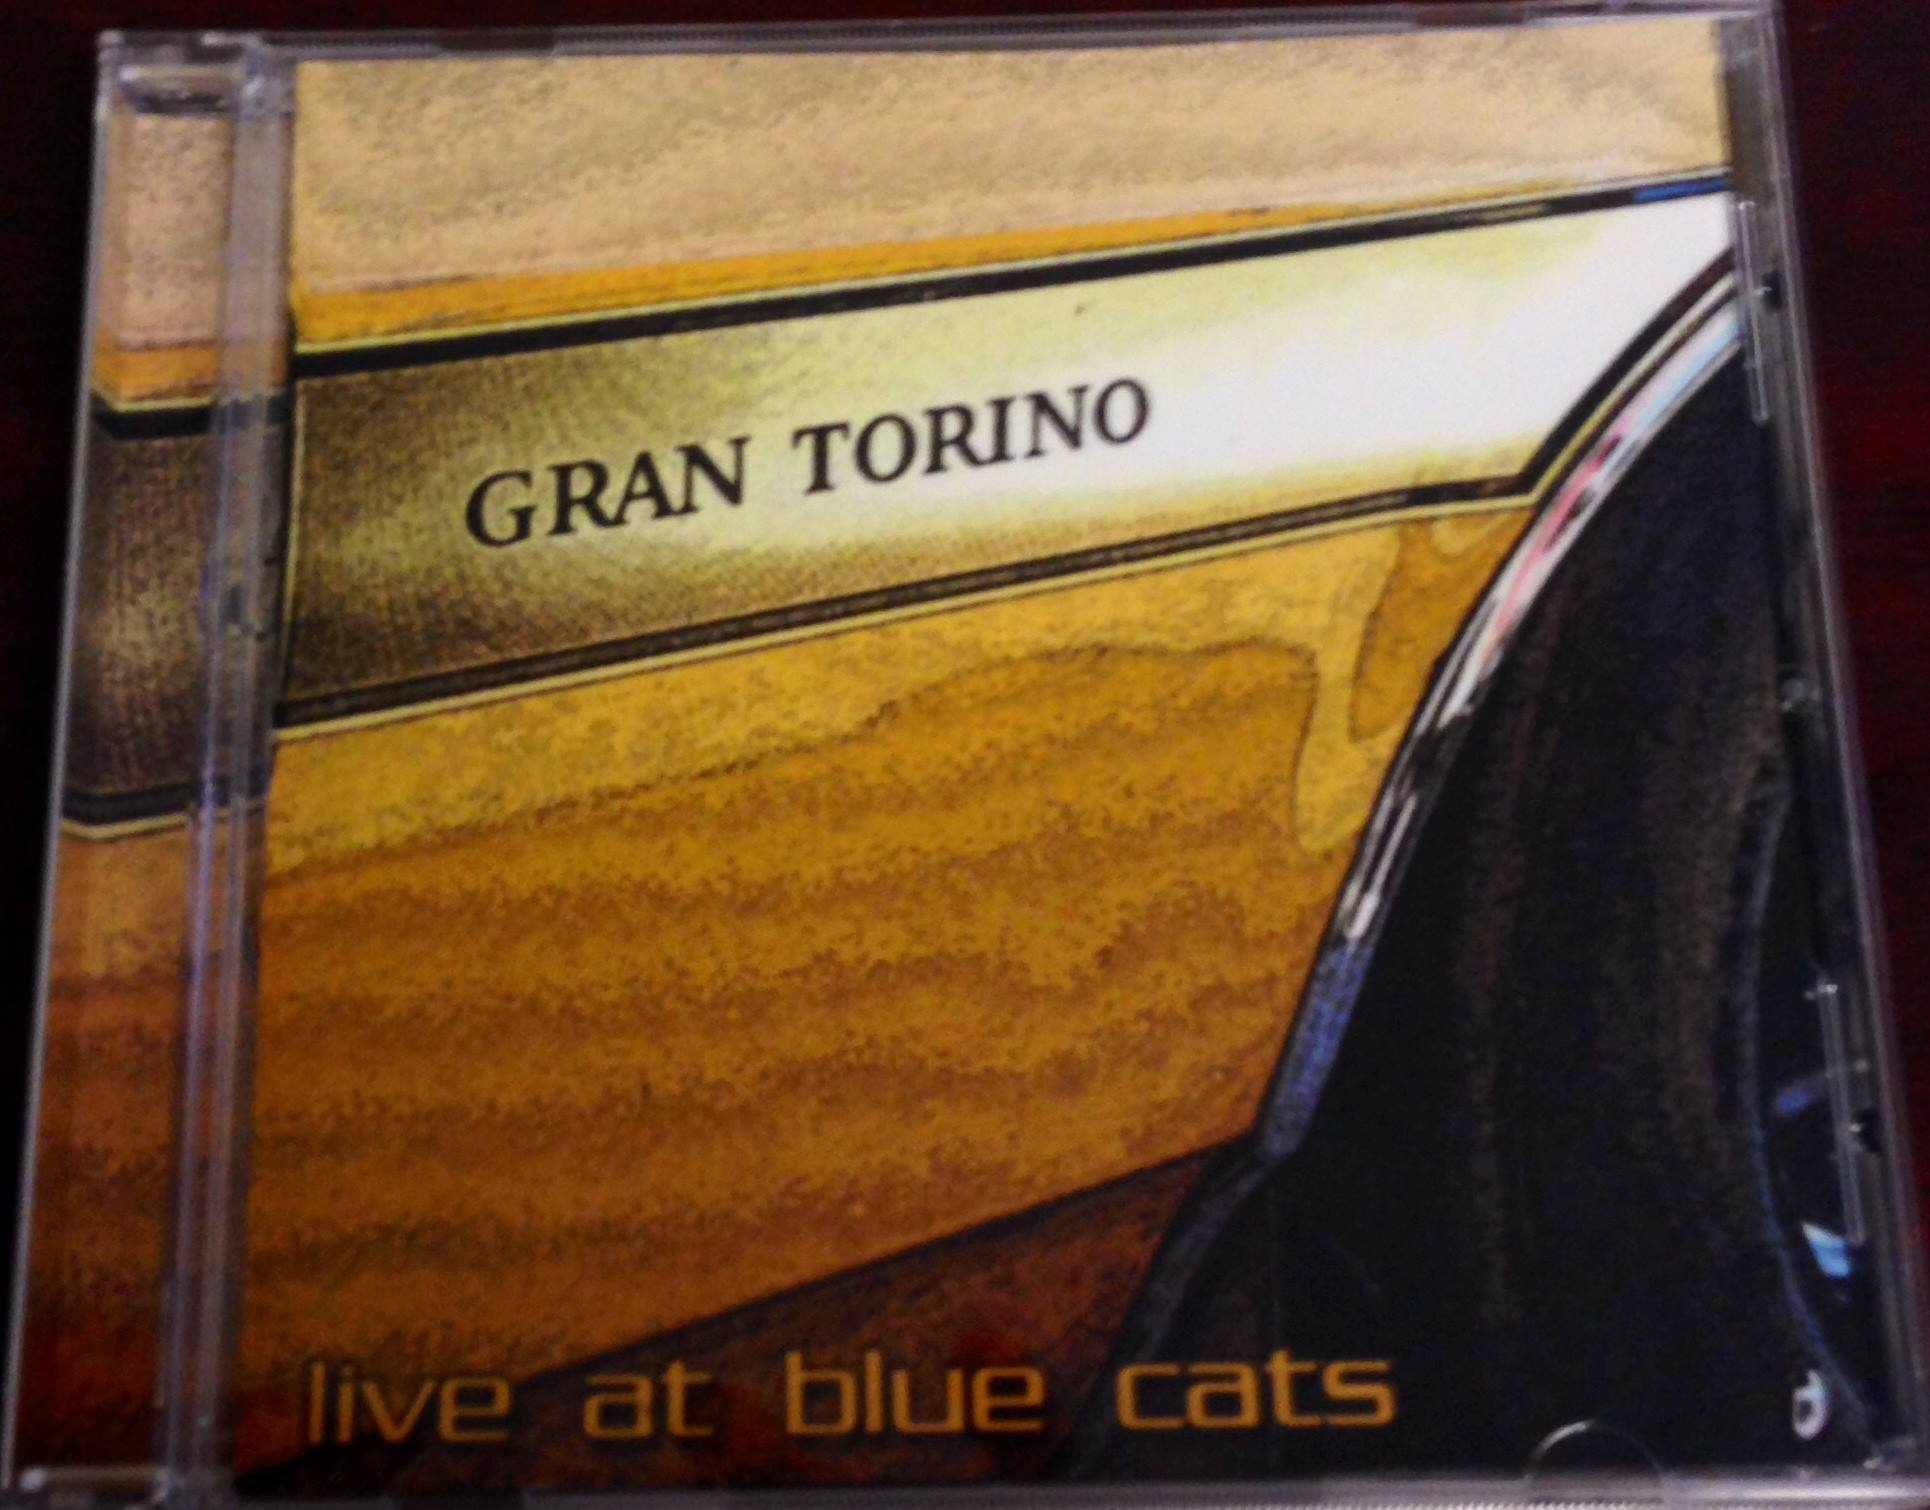 live-at-blue-cats-album-cover